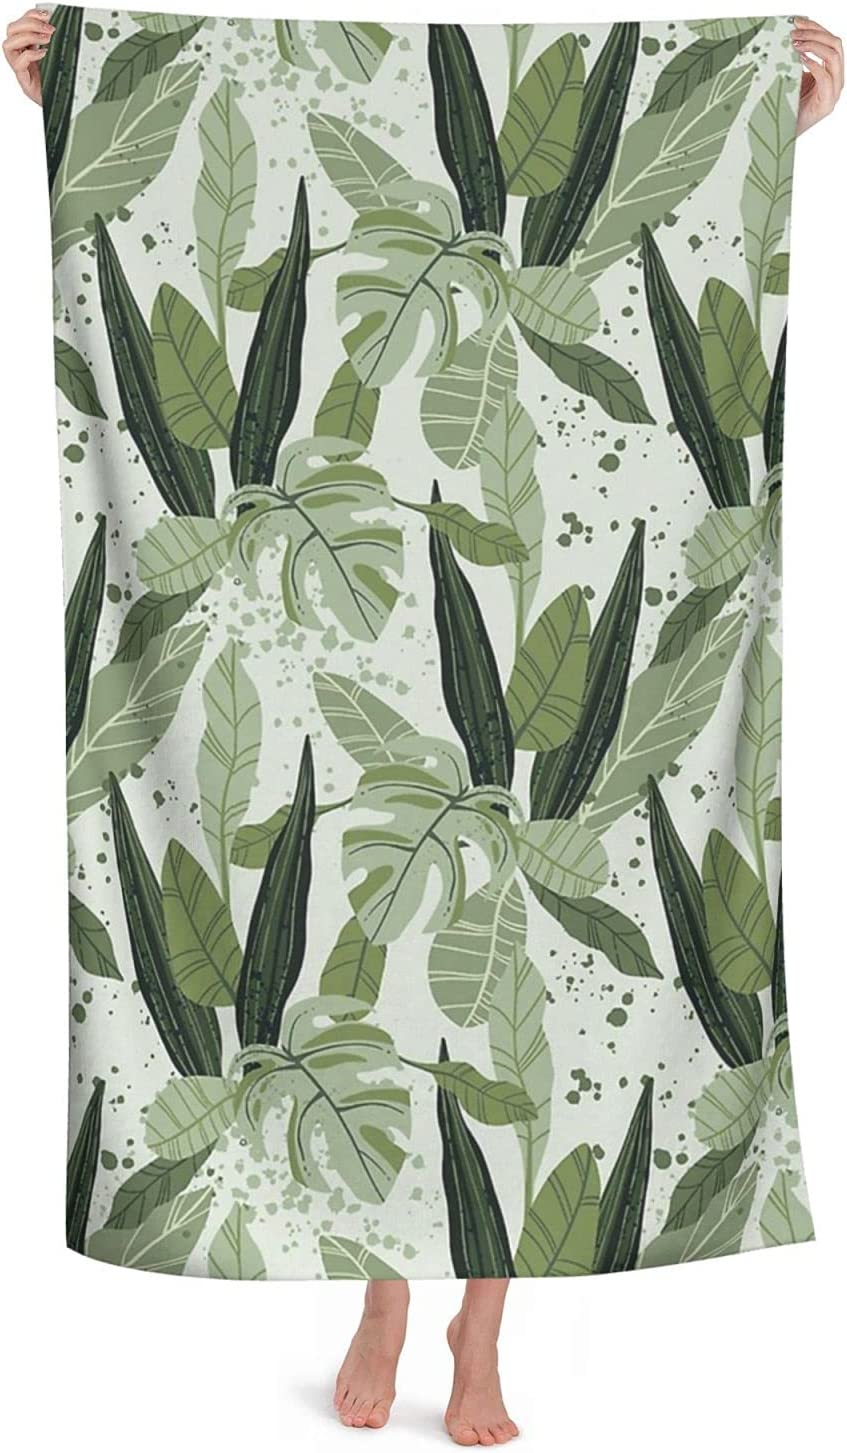 Pale Green Tropical Limited Special Price Beach Towel Microfiber Adult Soft Ultra for Complete Free Shipping